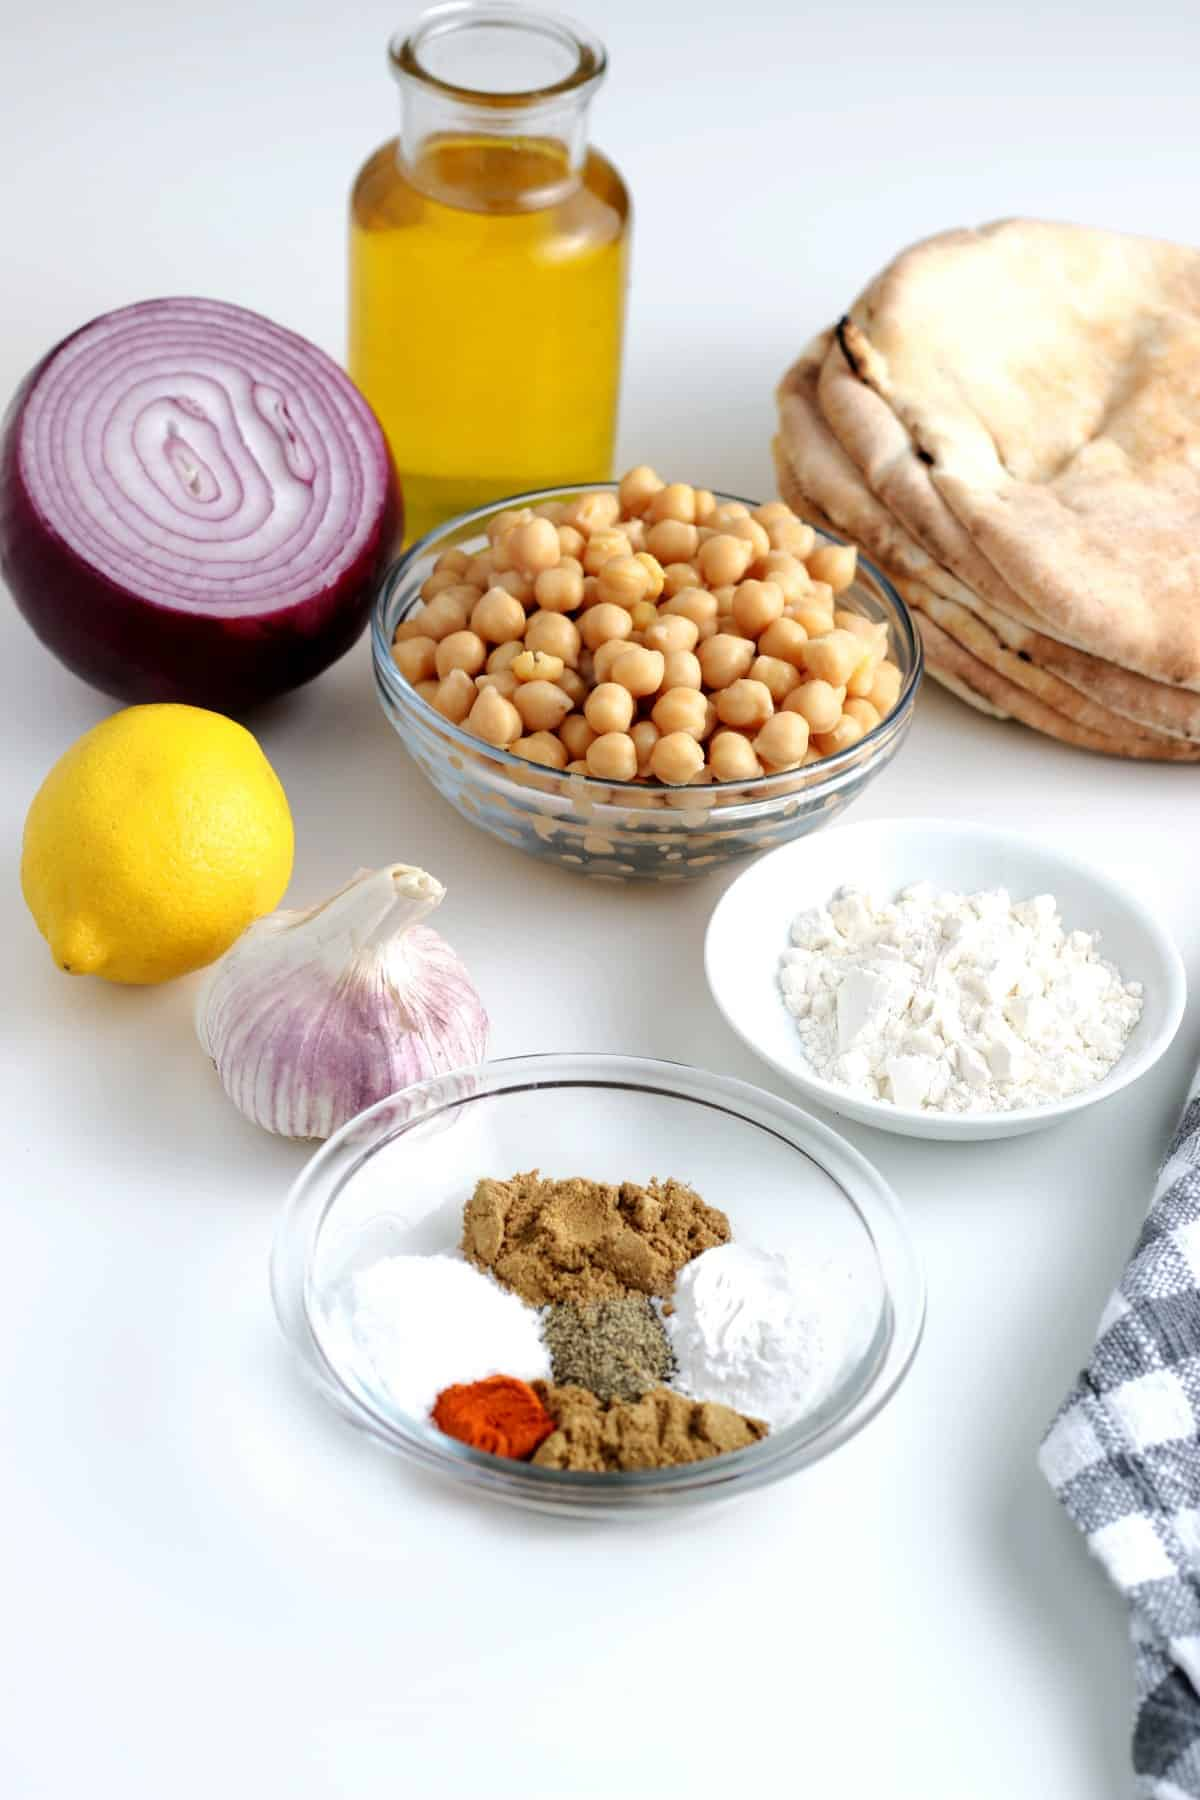 All of the ingredients in small bowls for falafel sandwiches.